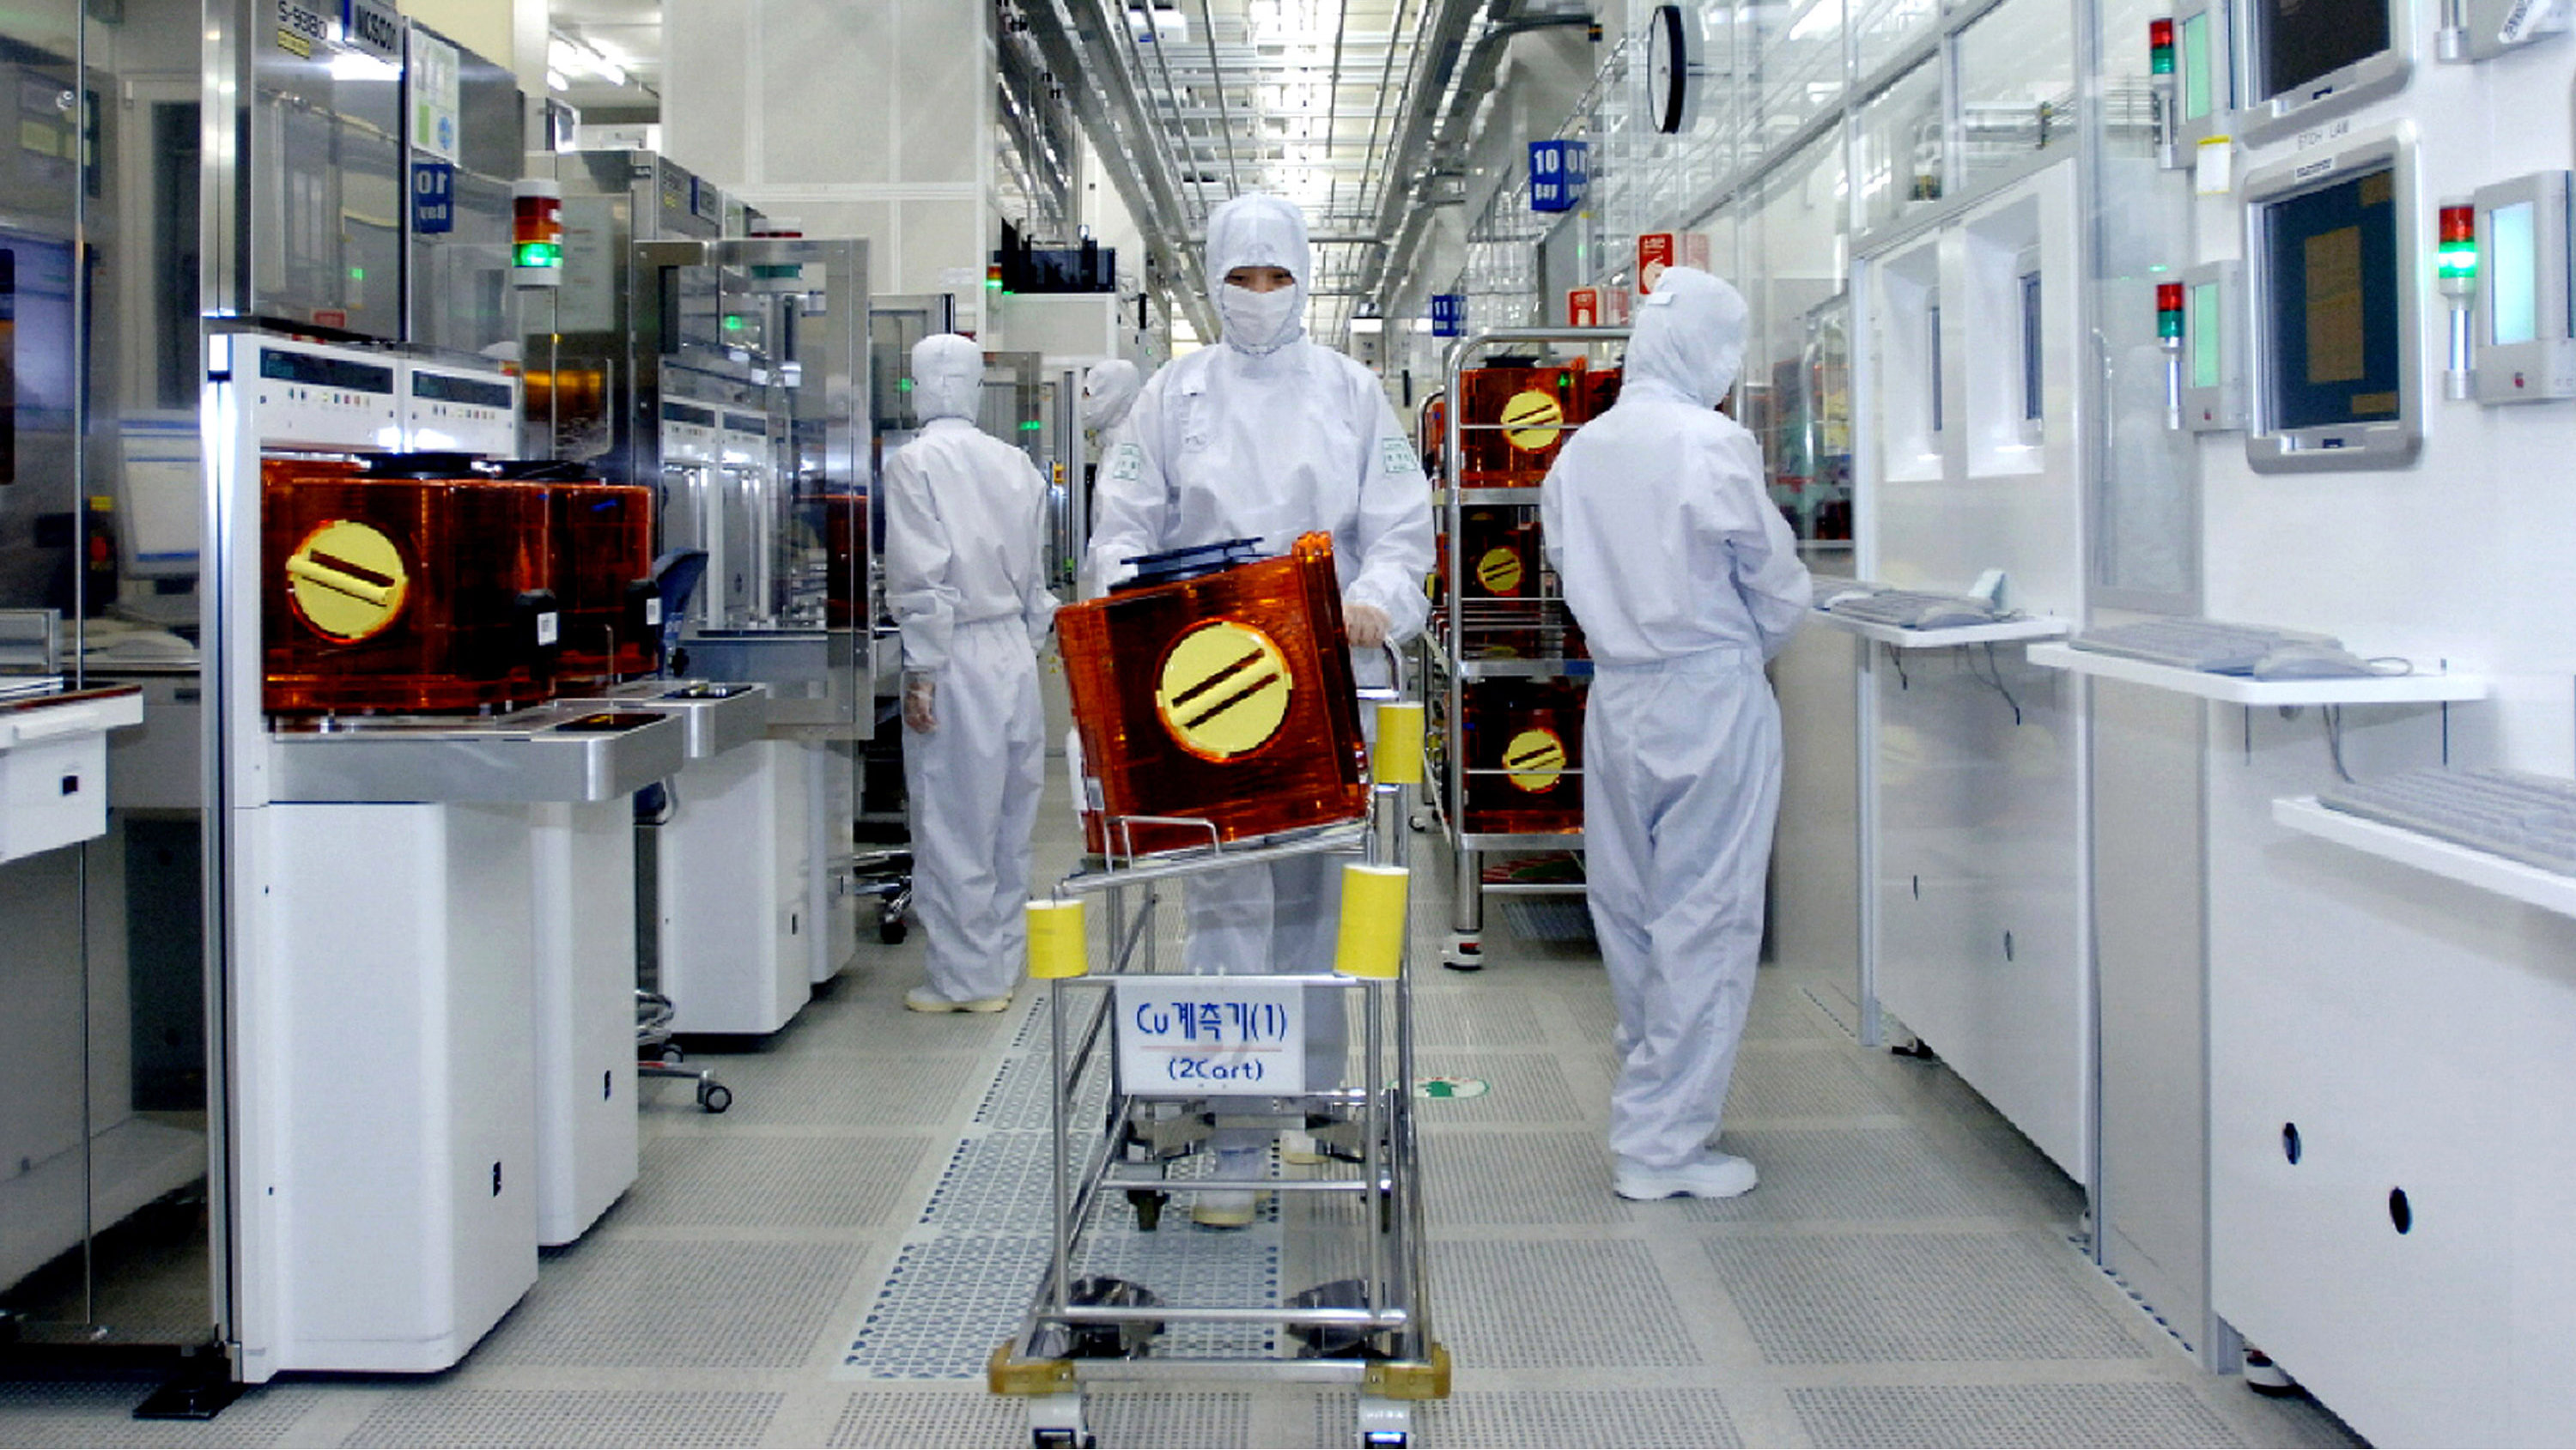 South Korean employees of Samsung Electronics Co. work at the resumed assembly line at semiconductor plant in Suwon, south of Seoul, Monday, Aug. 6, 2007.